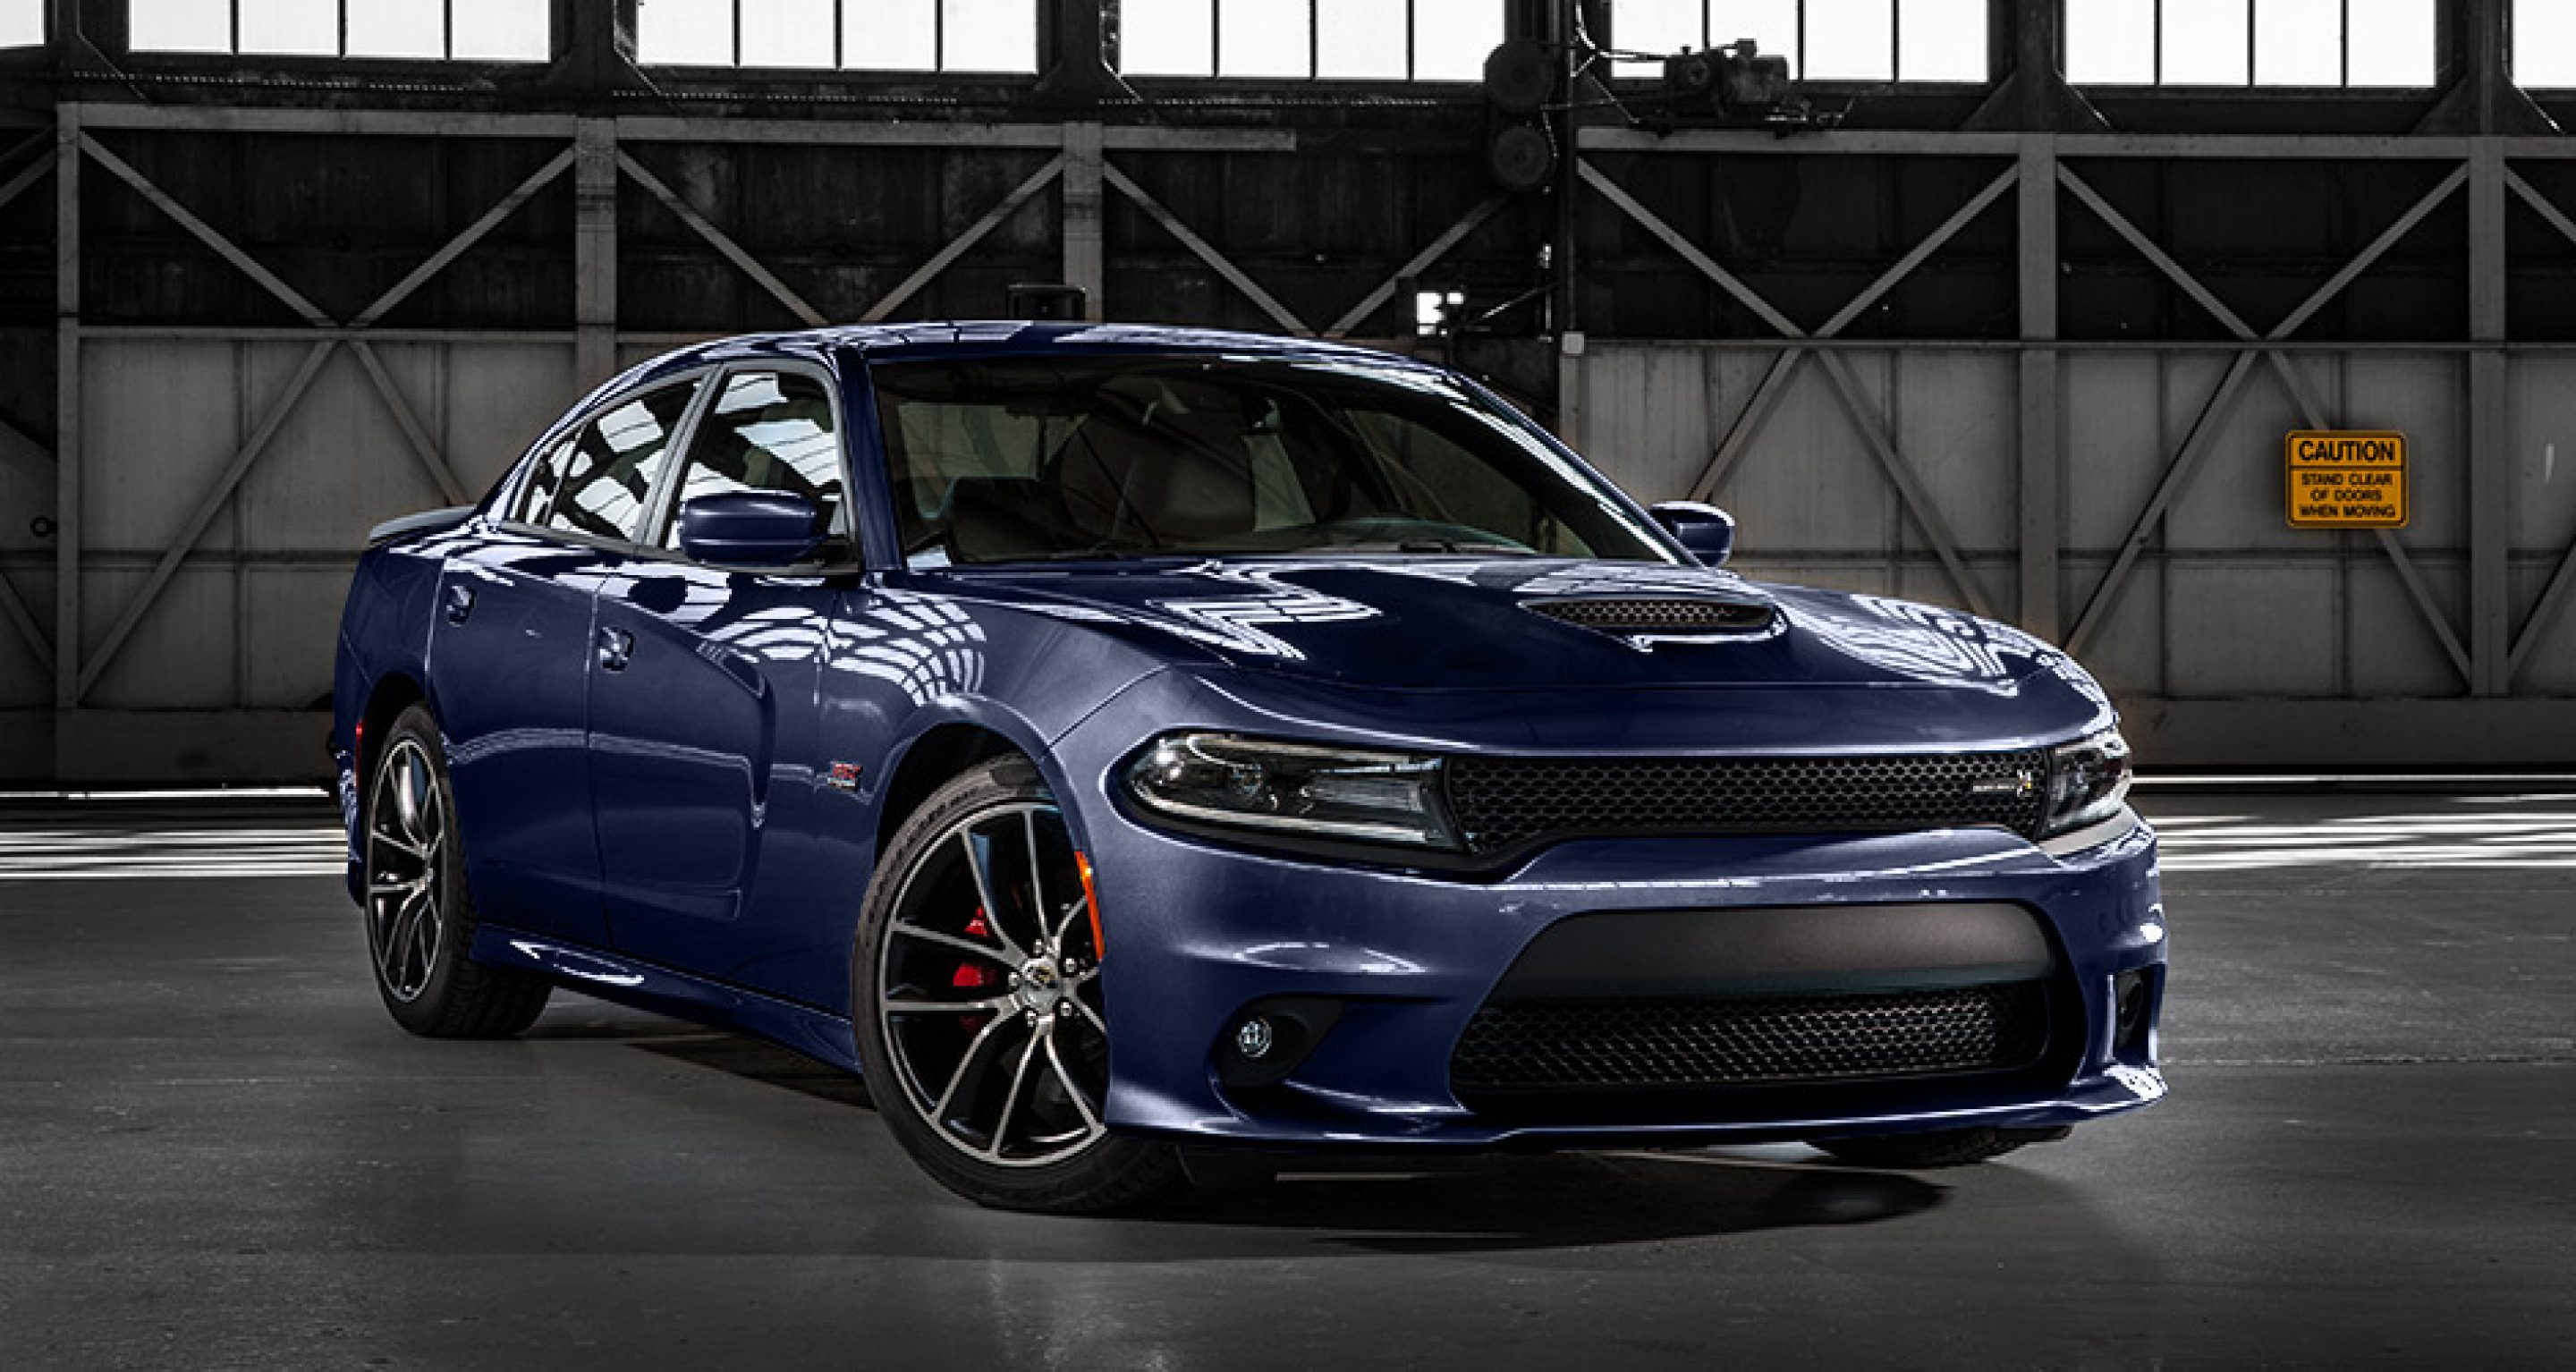 DODGE NEW CAR